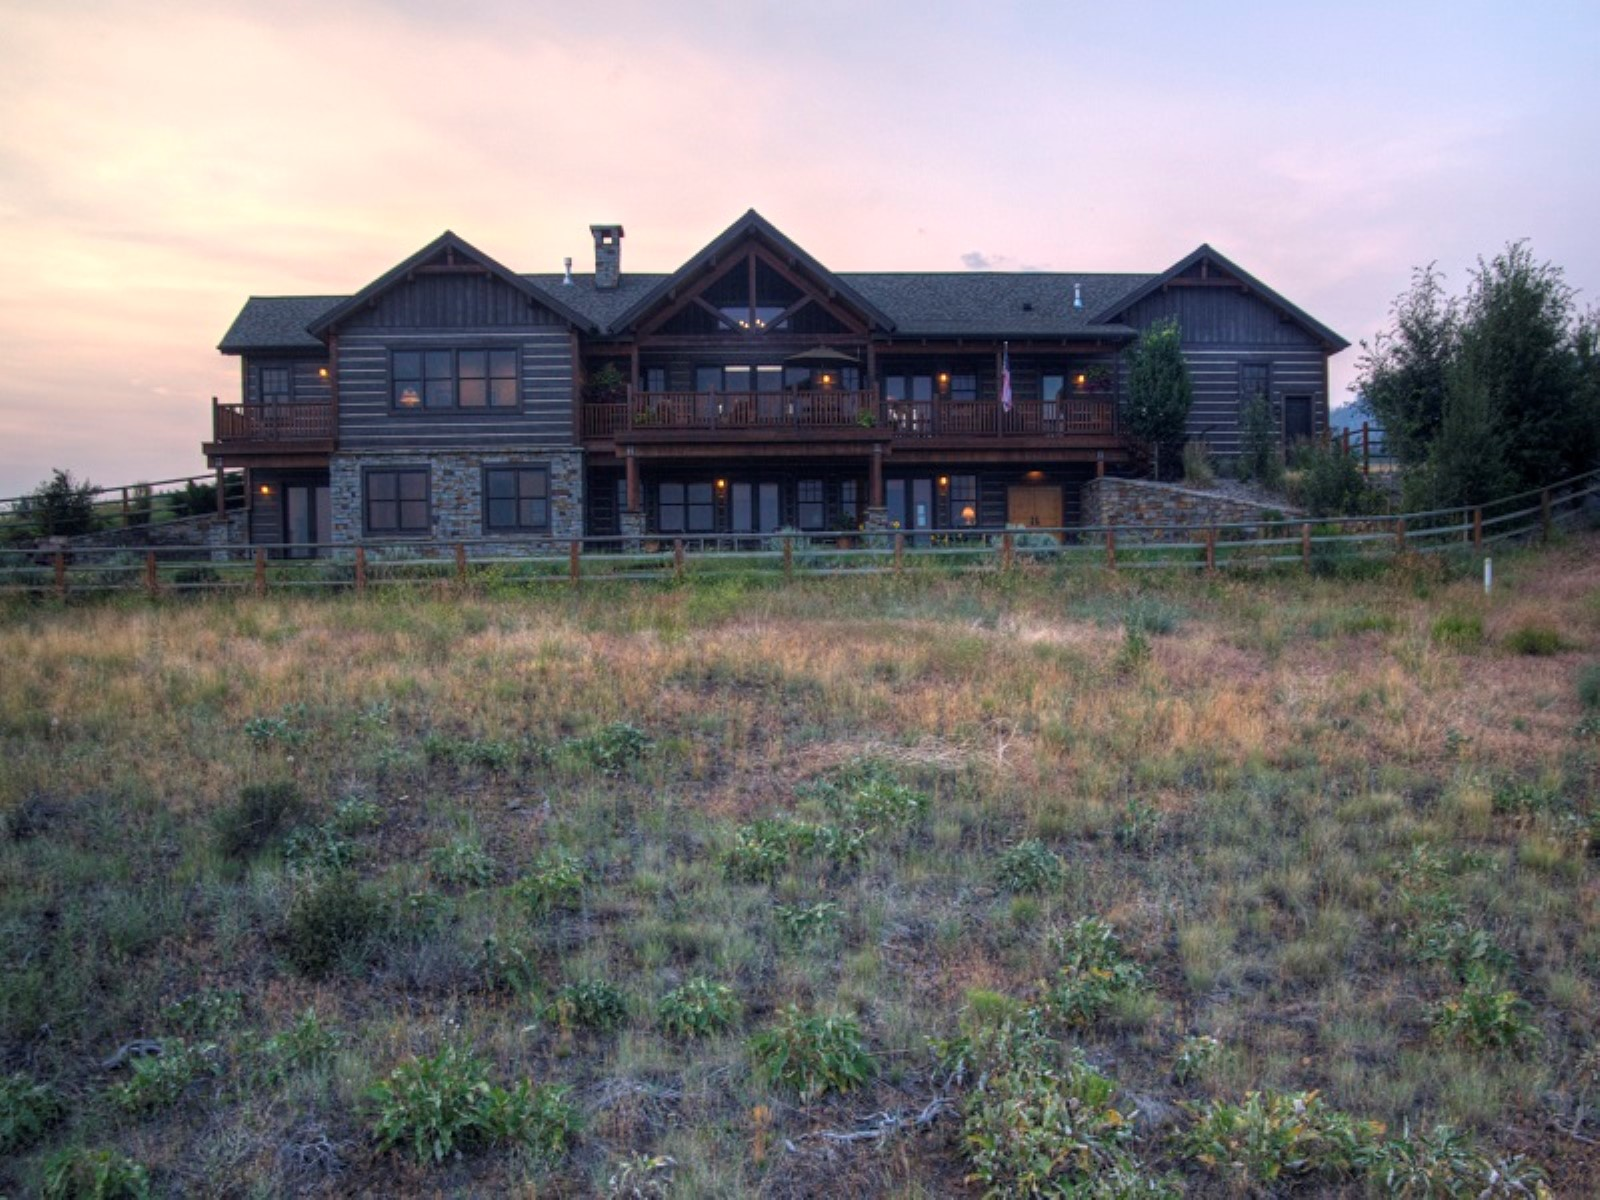 Single Family Home for Sale at Sapphire Ridge Ranch 2062 Hawks Peak Drive Florence, Montana 59833 United States